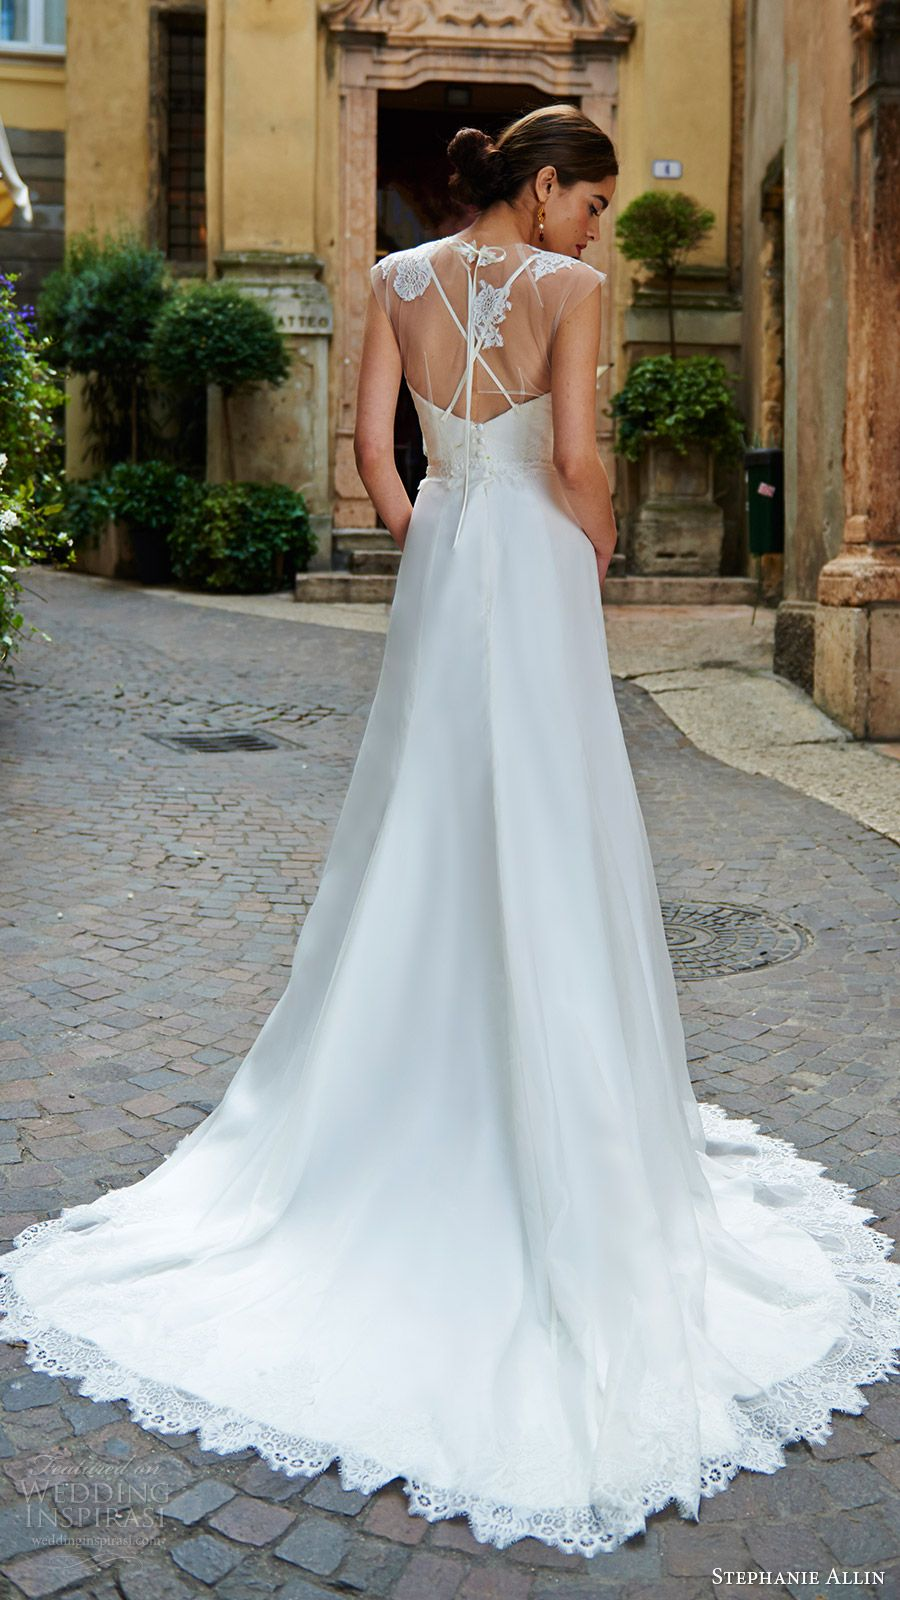 Stephanie allin wedding dresses bellissimo bridal collection